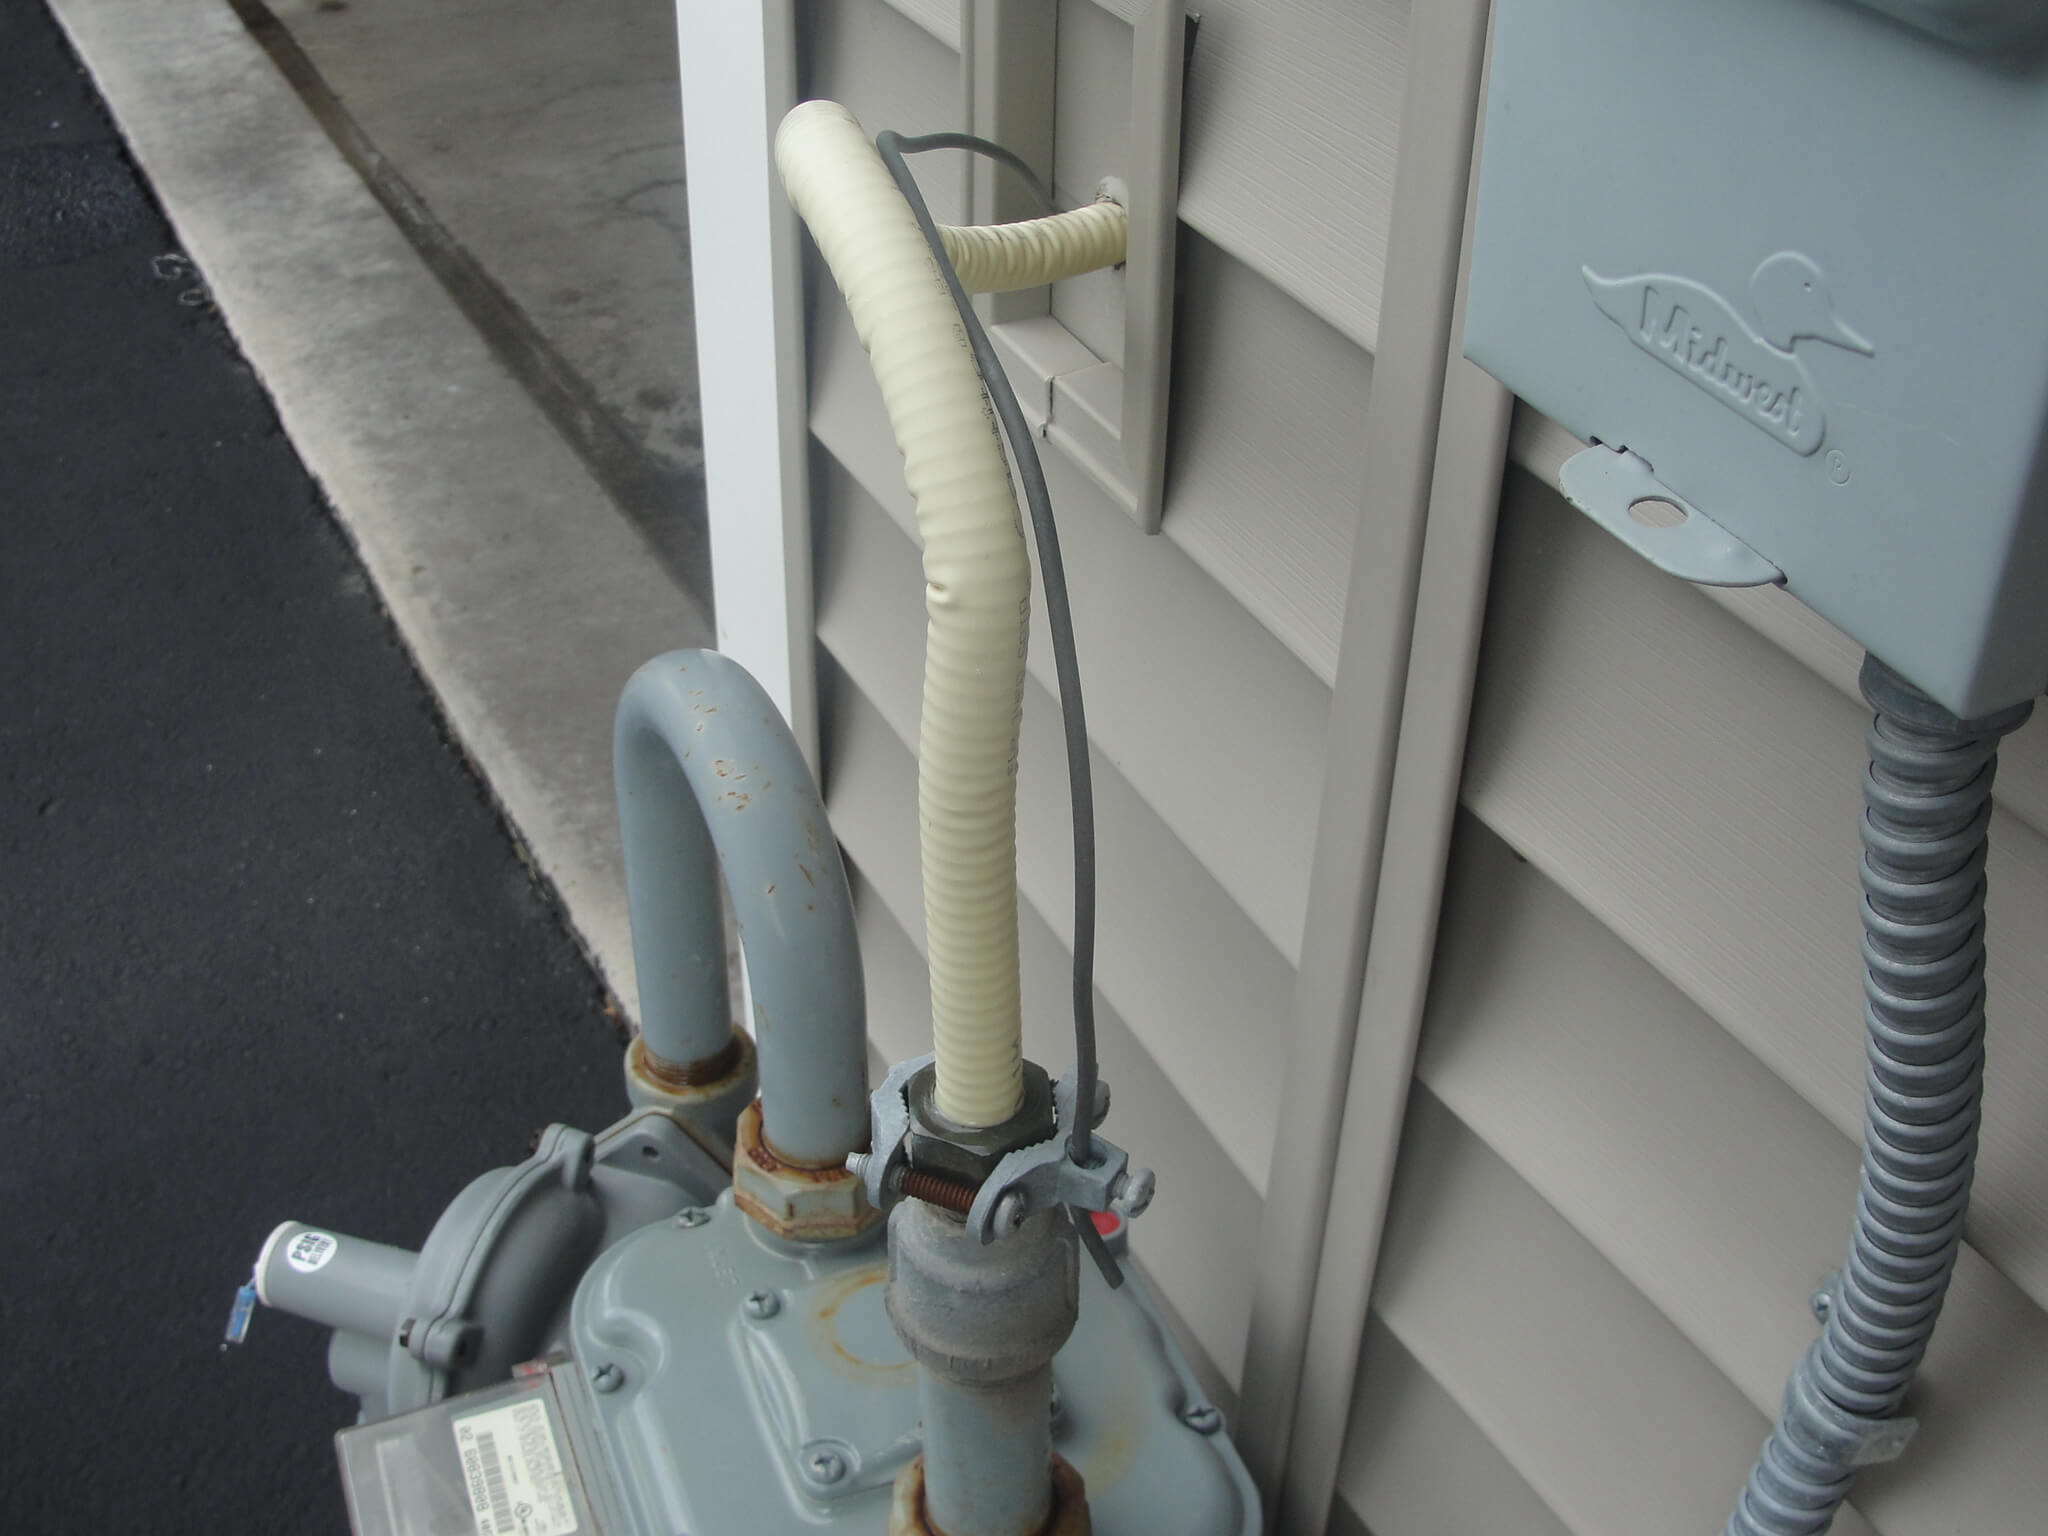 Running Gas Line To Fireplace Bonding Your Csst Gas Lines Minnesota Updates Its Rules